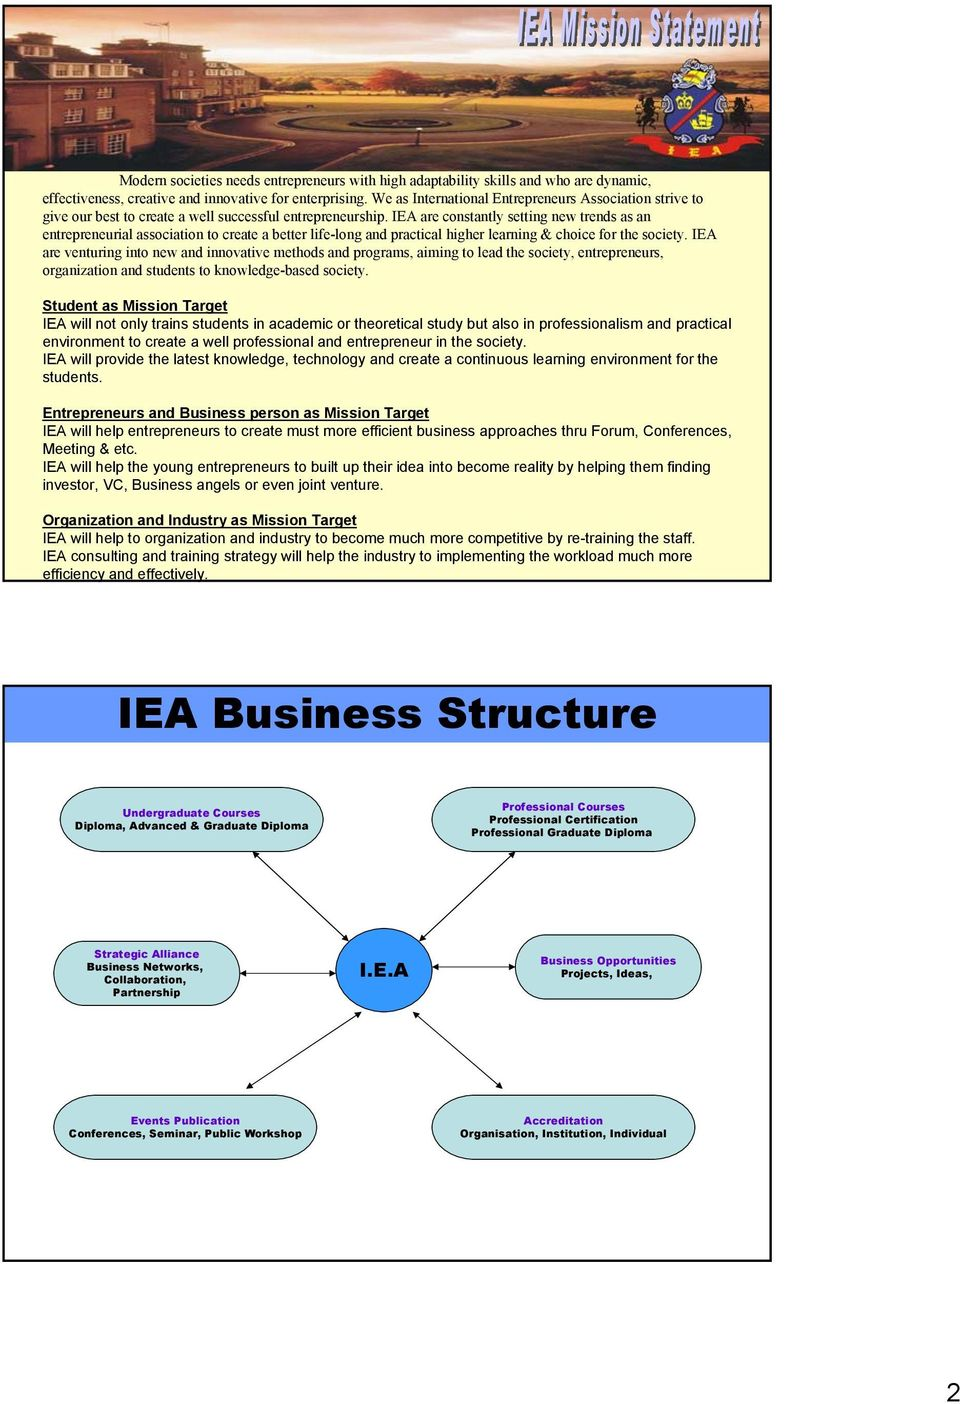 IEA are constantly setting new trends as an entrepreneurial association to create a better life-long and practical higher learning & choice for the society.